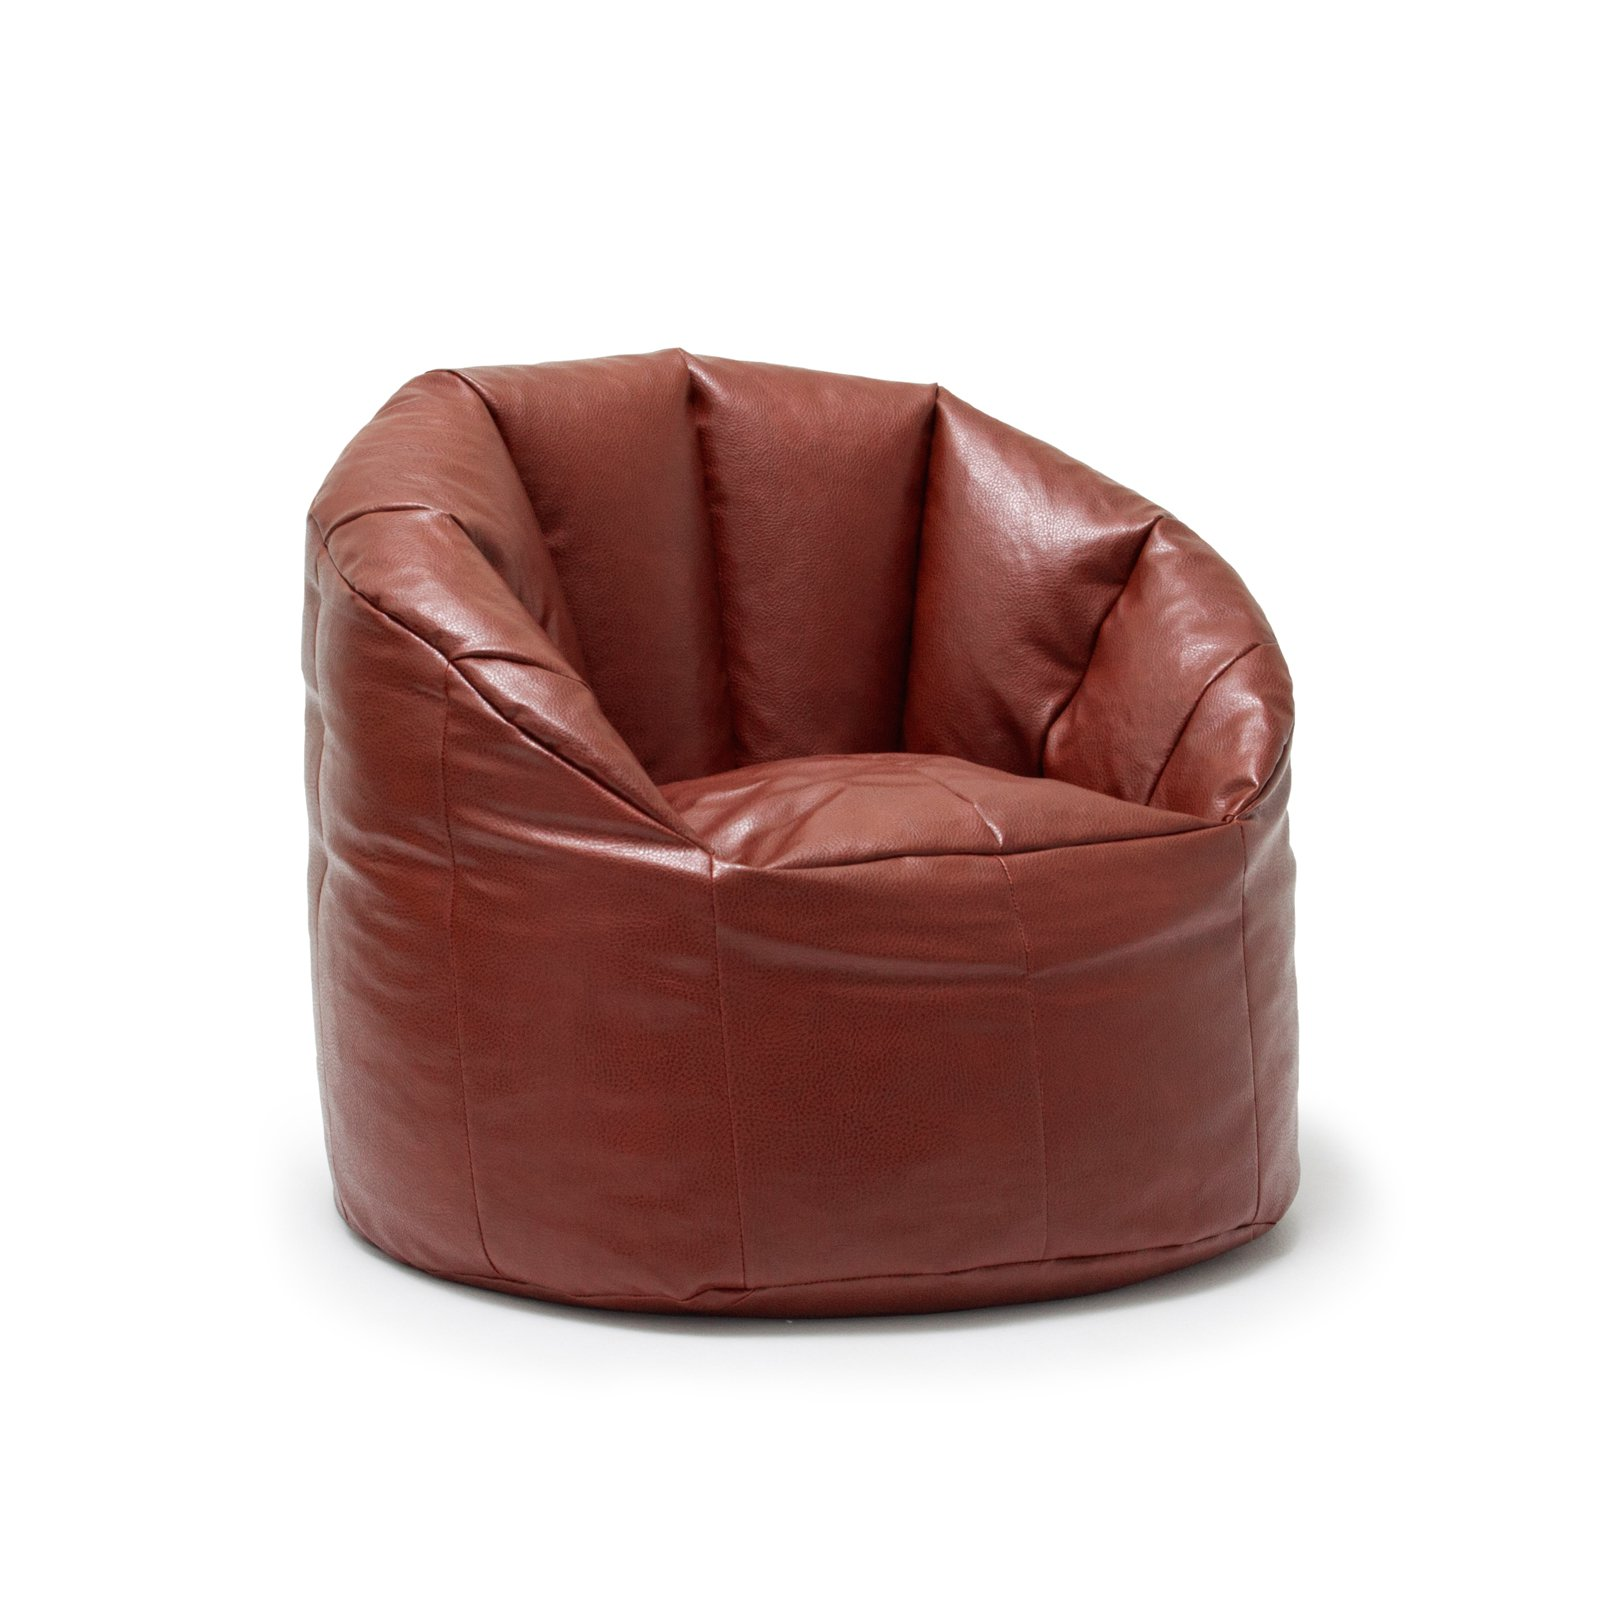 bean bag chair cost of systems design eth zurich big joe milano woodland camo price tracking